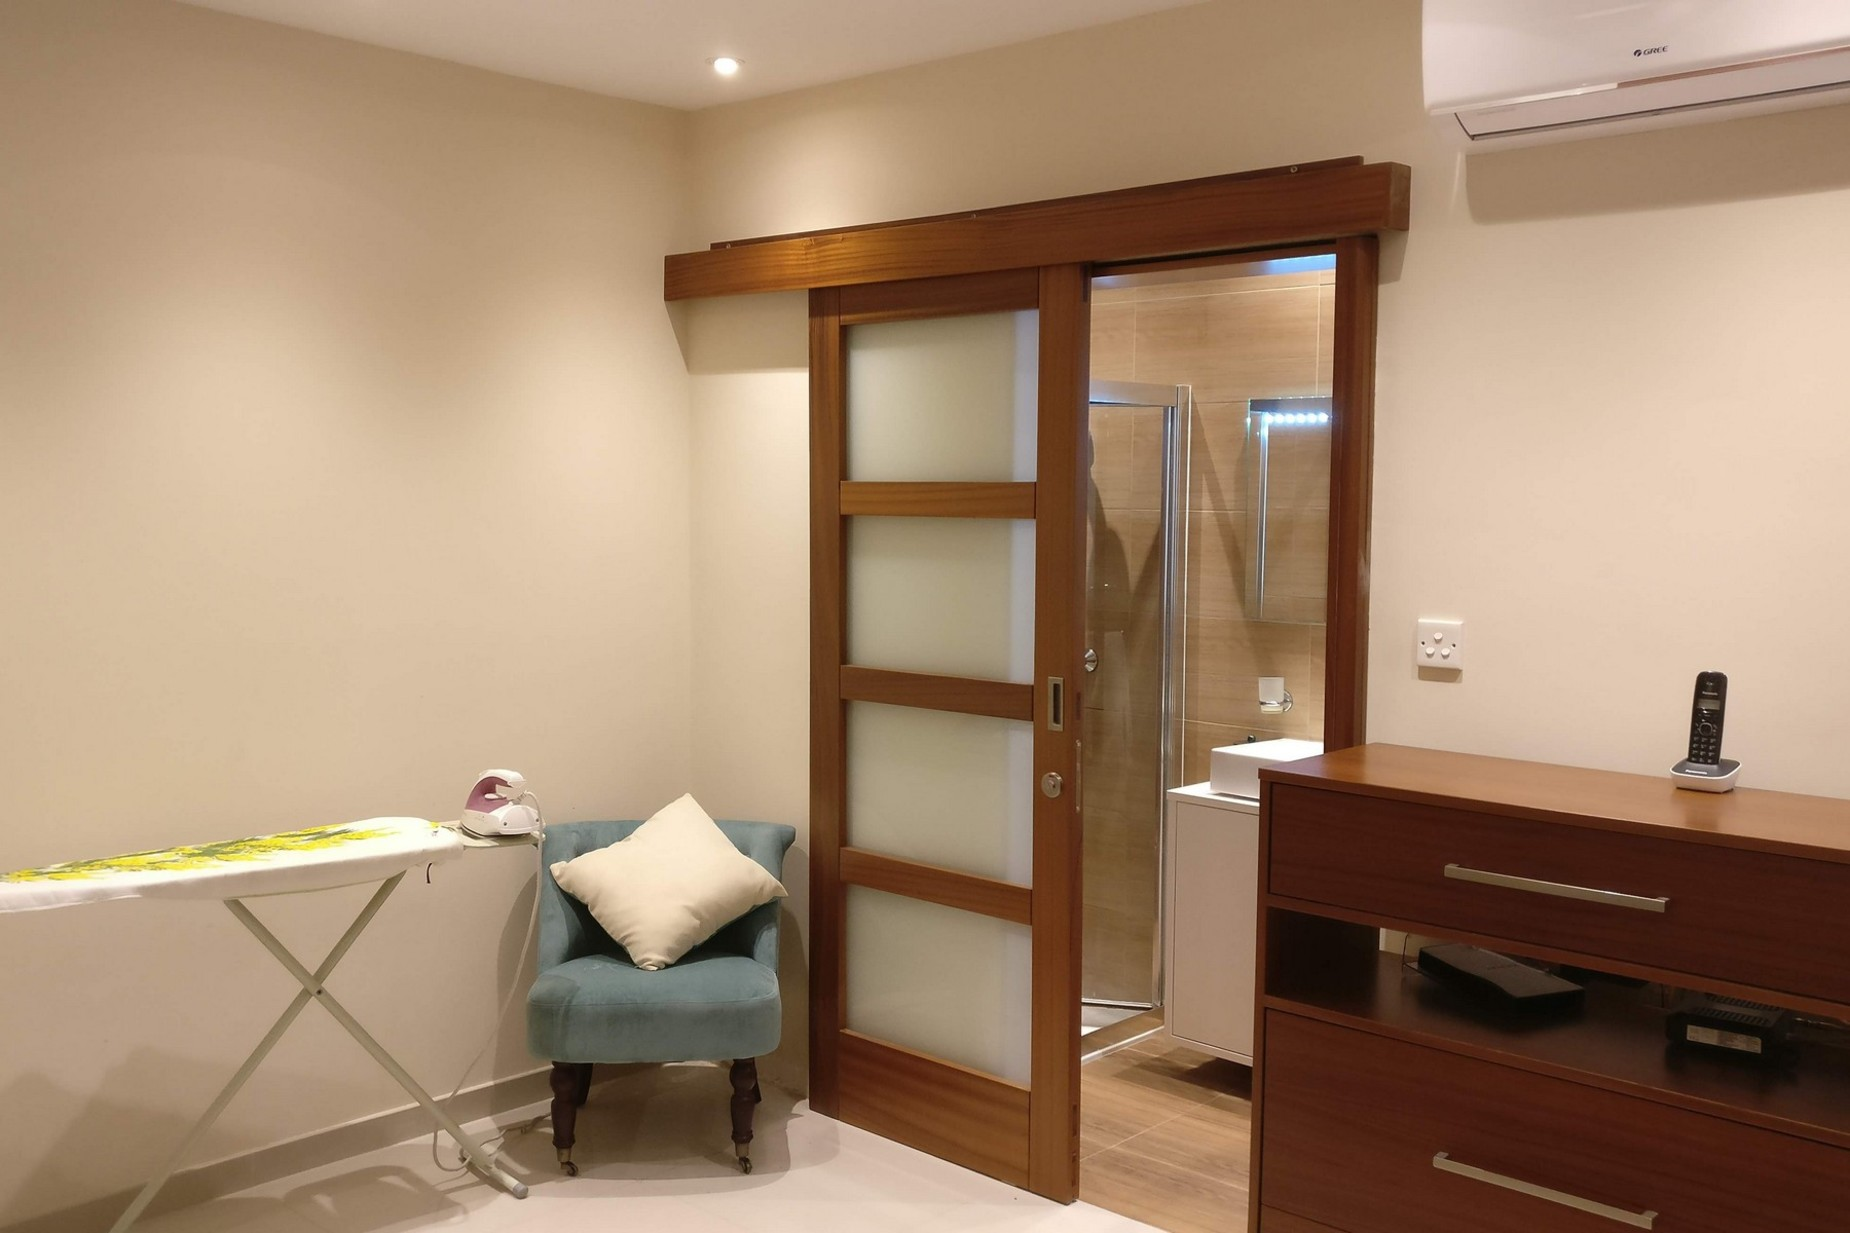 3 bed Apartment For Rent in Mosta, Mosta - thumb 8